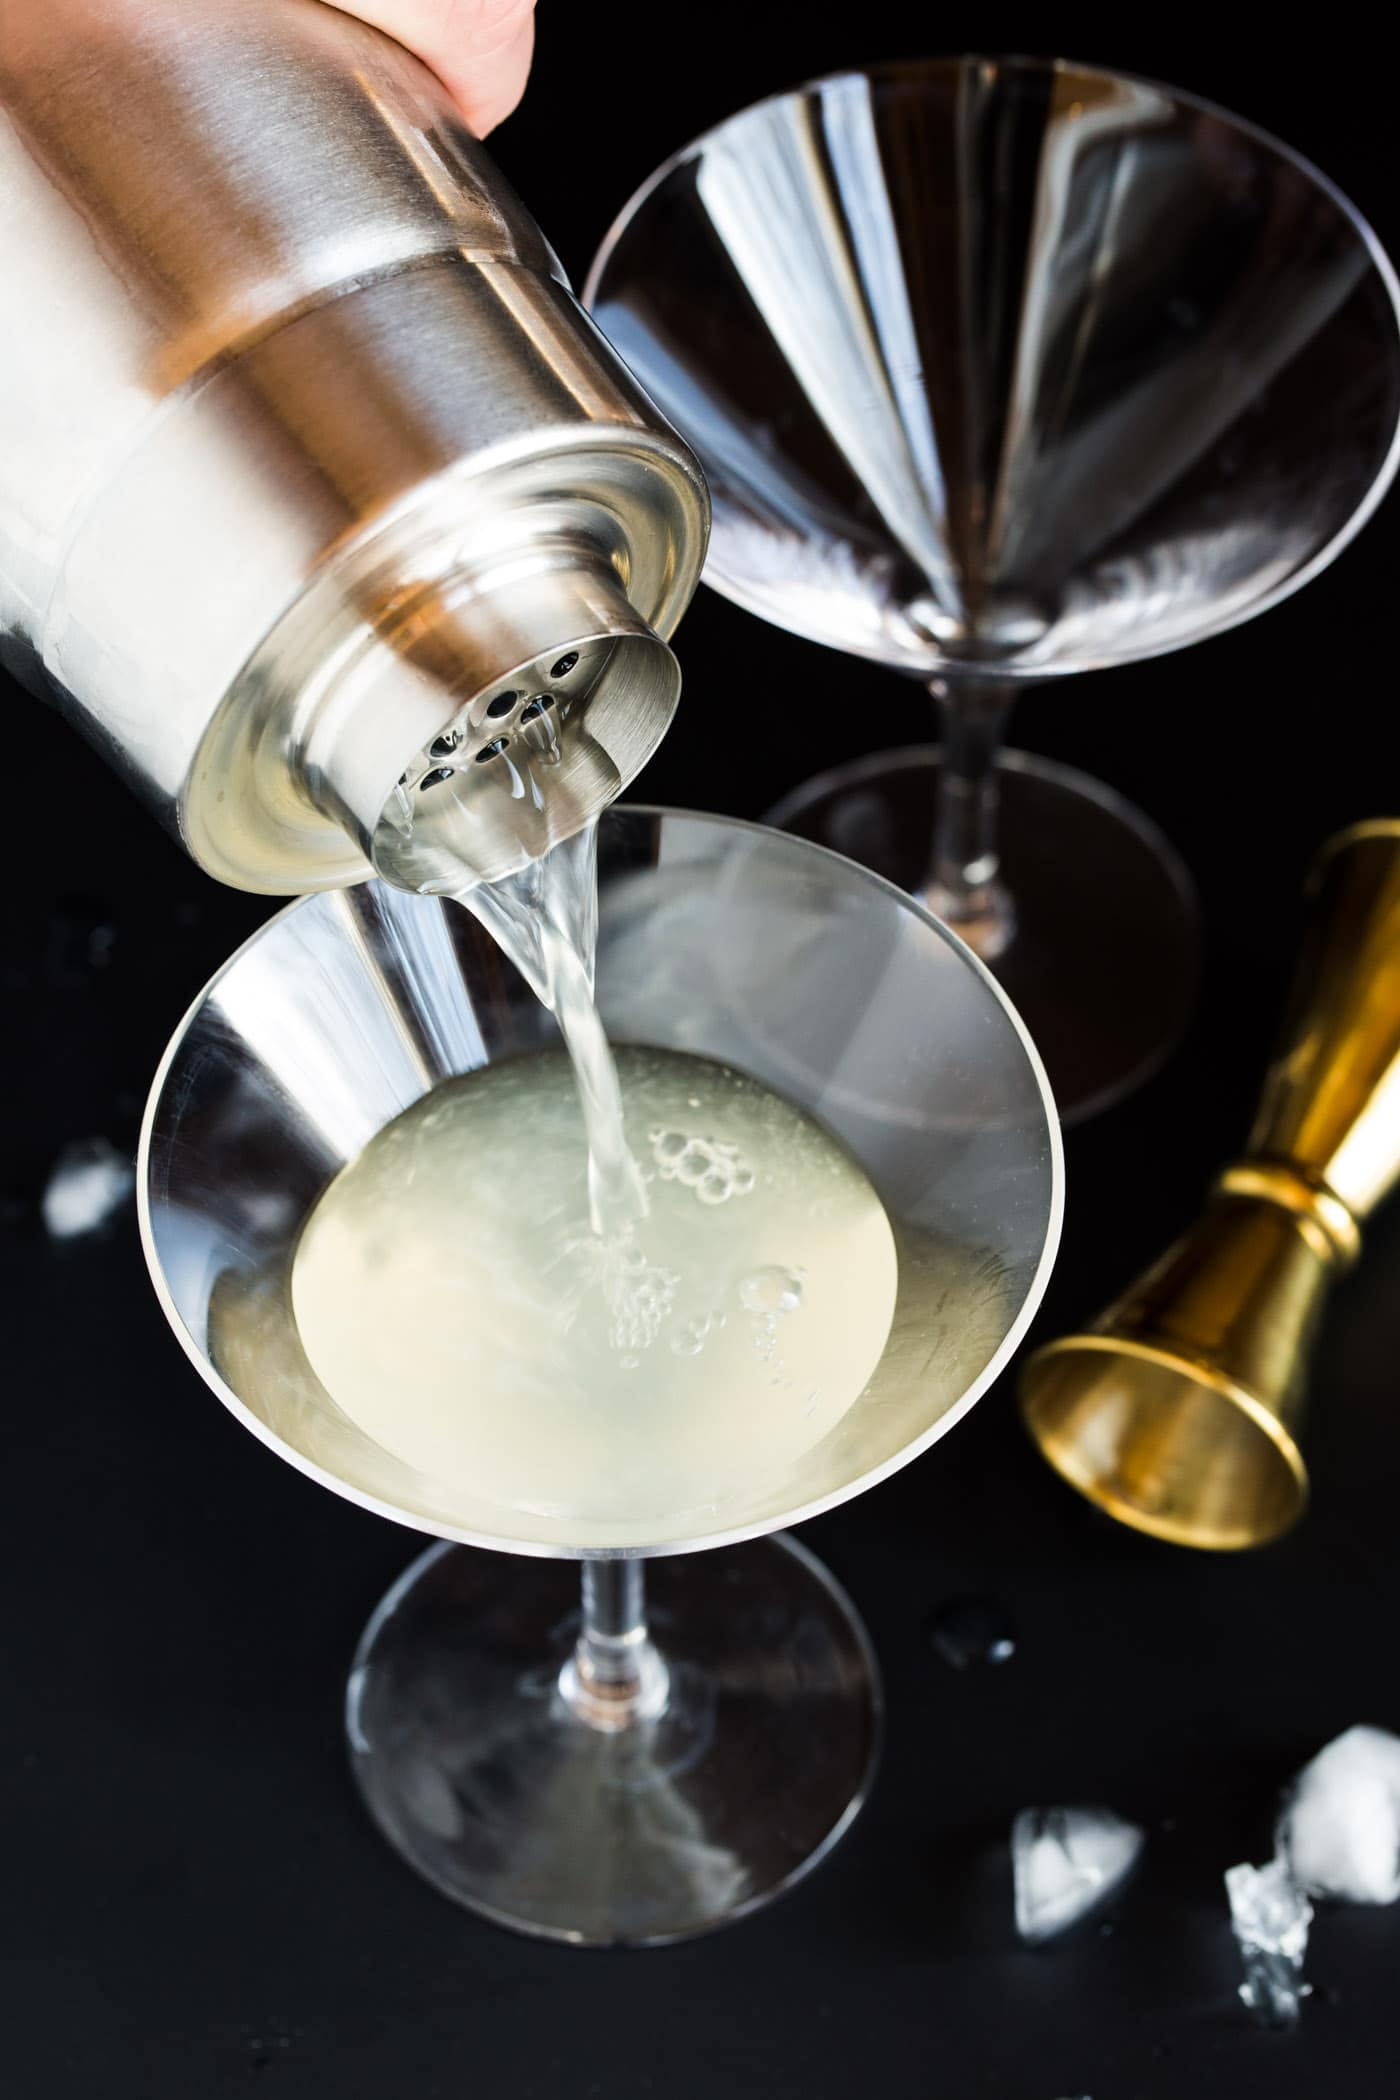 Elderflower Martinis being poured into short martini glasses from silver shaker.